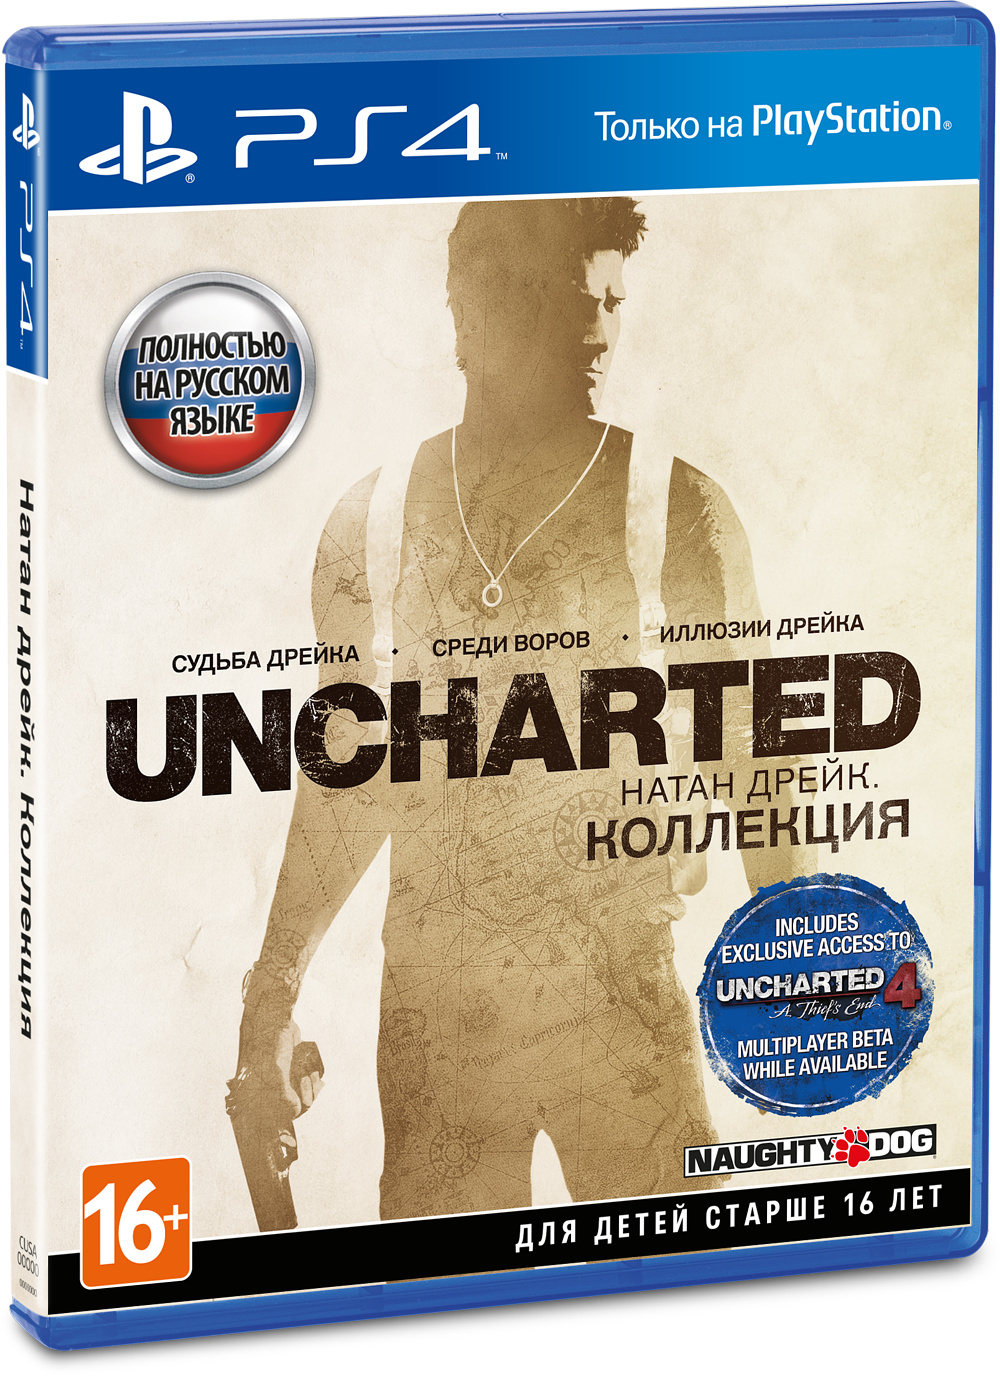 Uncharted: Натан Дрейк. Коллекция [PS4]В сборник Uncharted: Натан Дрейк. Коллекция для PS4 войдут все три игры серии: Uncharted: Drakes Fortune, Uncharted 2: Among Thieves и Uncharted 3: &#13;<br>Иллюзии Дрейка.<br>